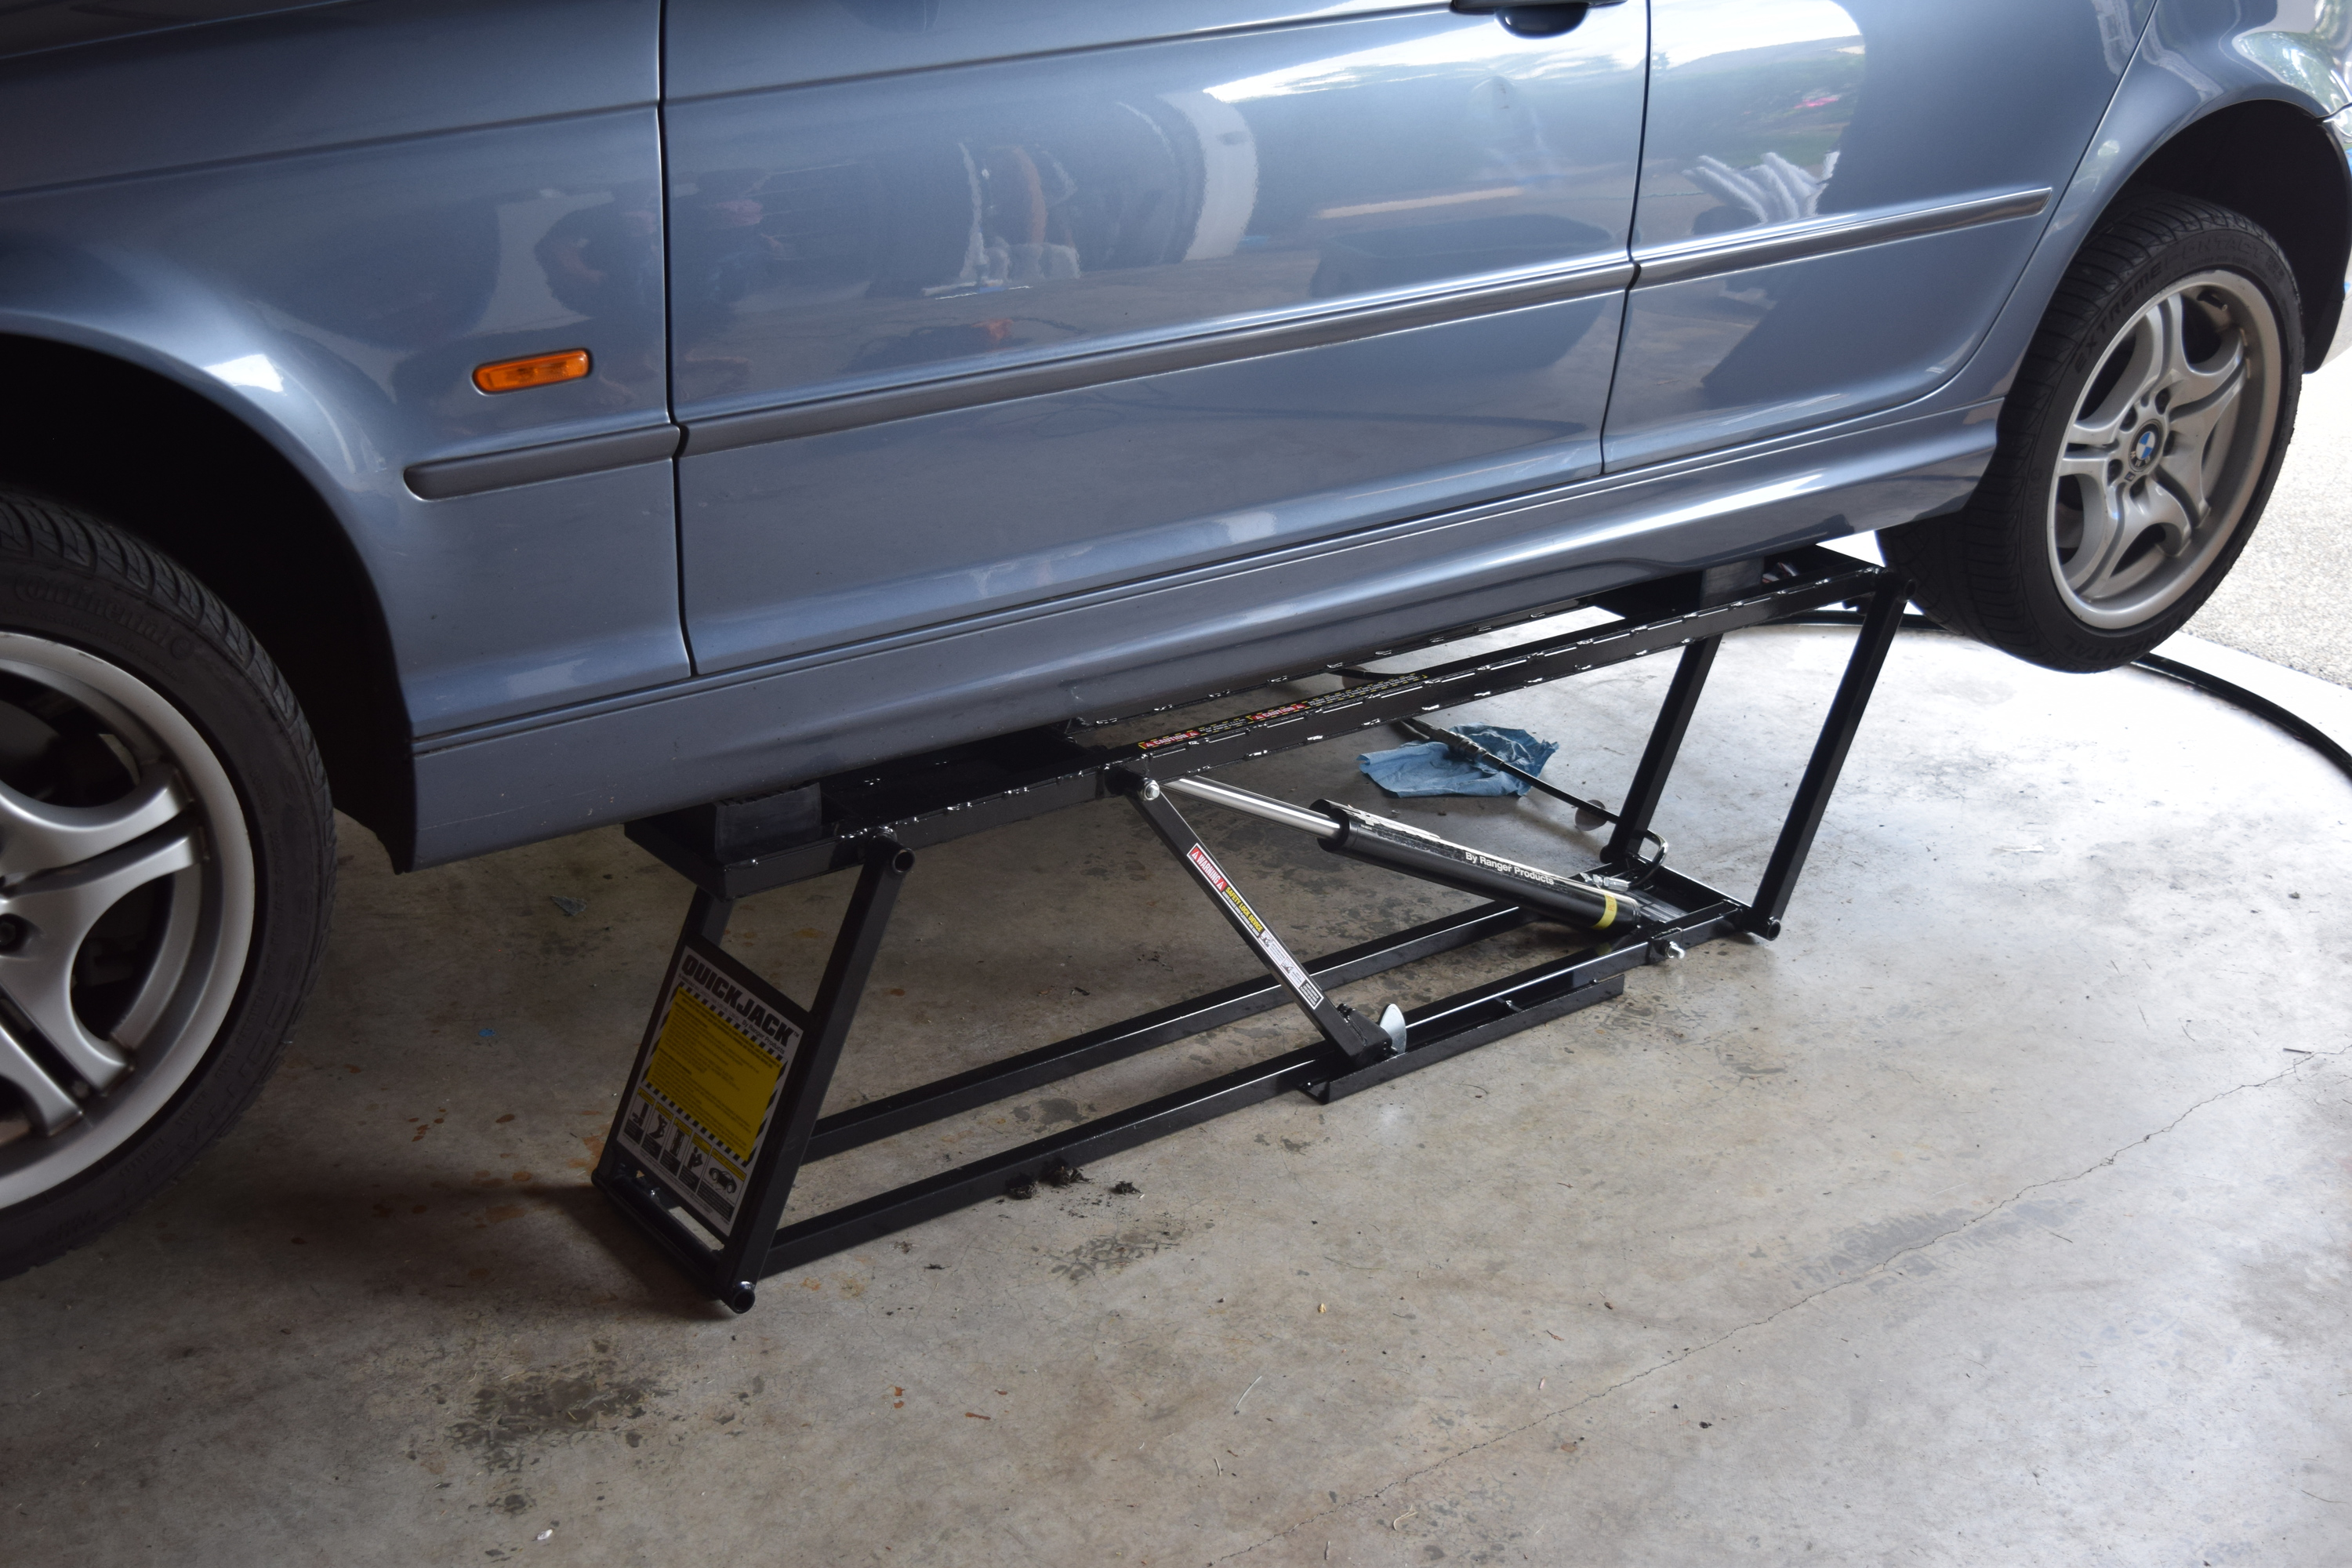 Quickjack 5000 Lifting BMW e46 330i Side